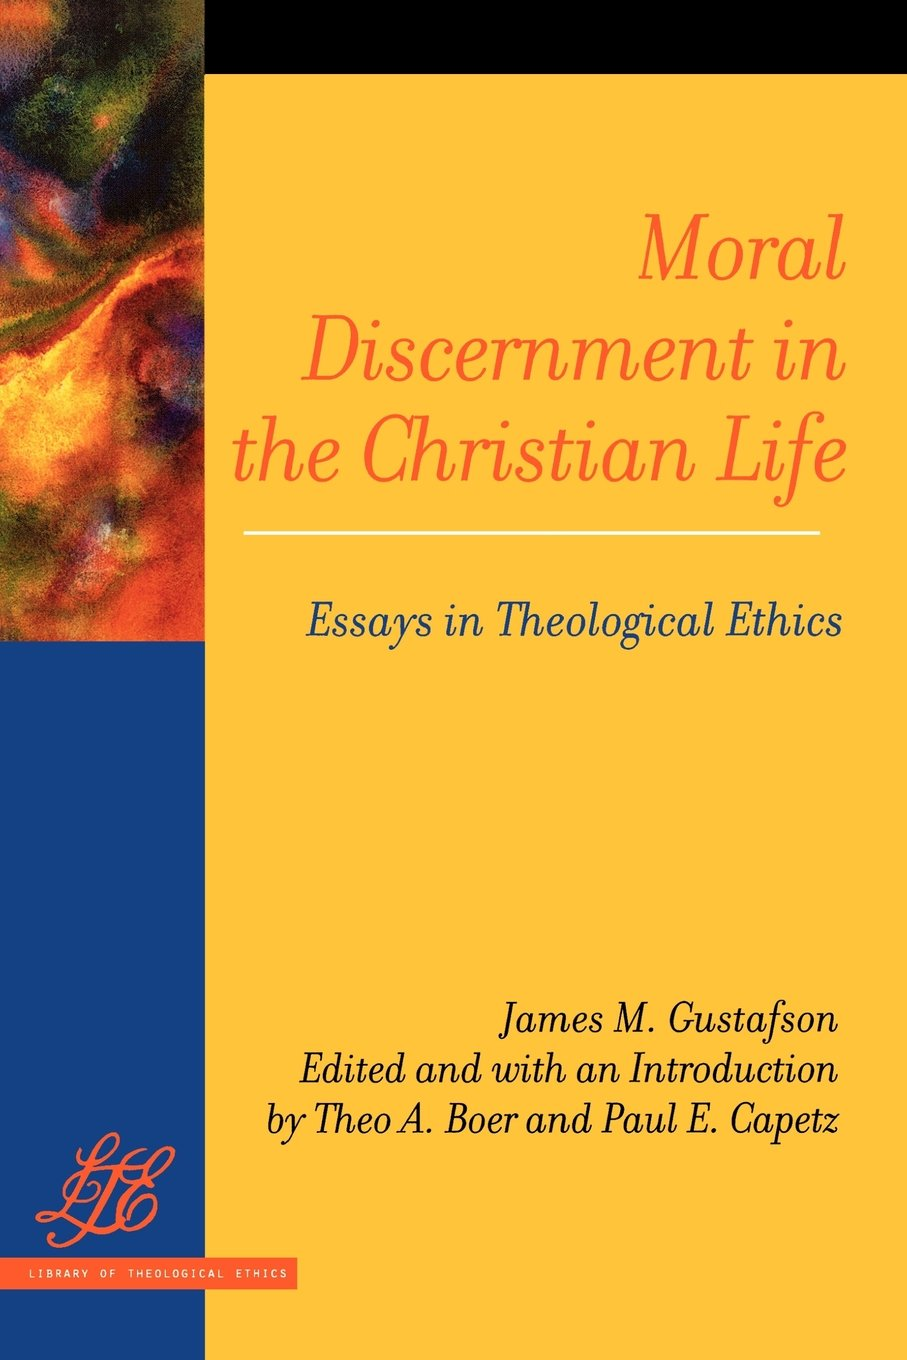 moral discernment in the christian life essays in theological moral discernment in the christian life essays in theological ethics library of theological ethics james m gustafson 9780664230708 com books